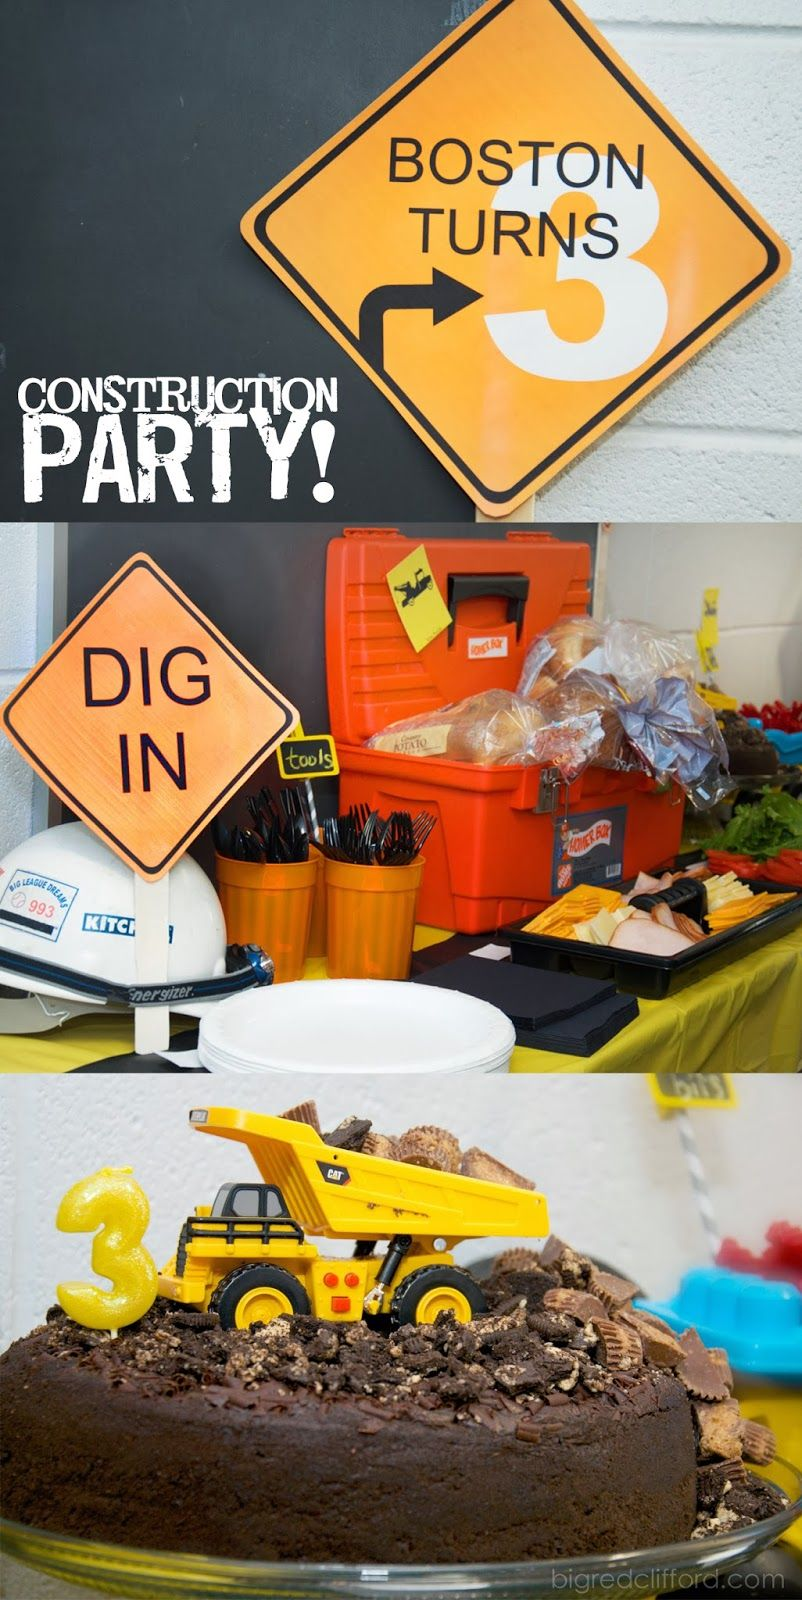 3 Year Old Construction Party Free Printables Bigredclifford Com Construction Birthday Parties Construction Party Food Construction Party